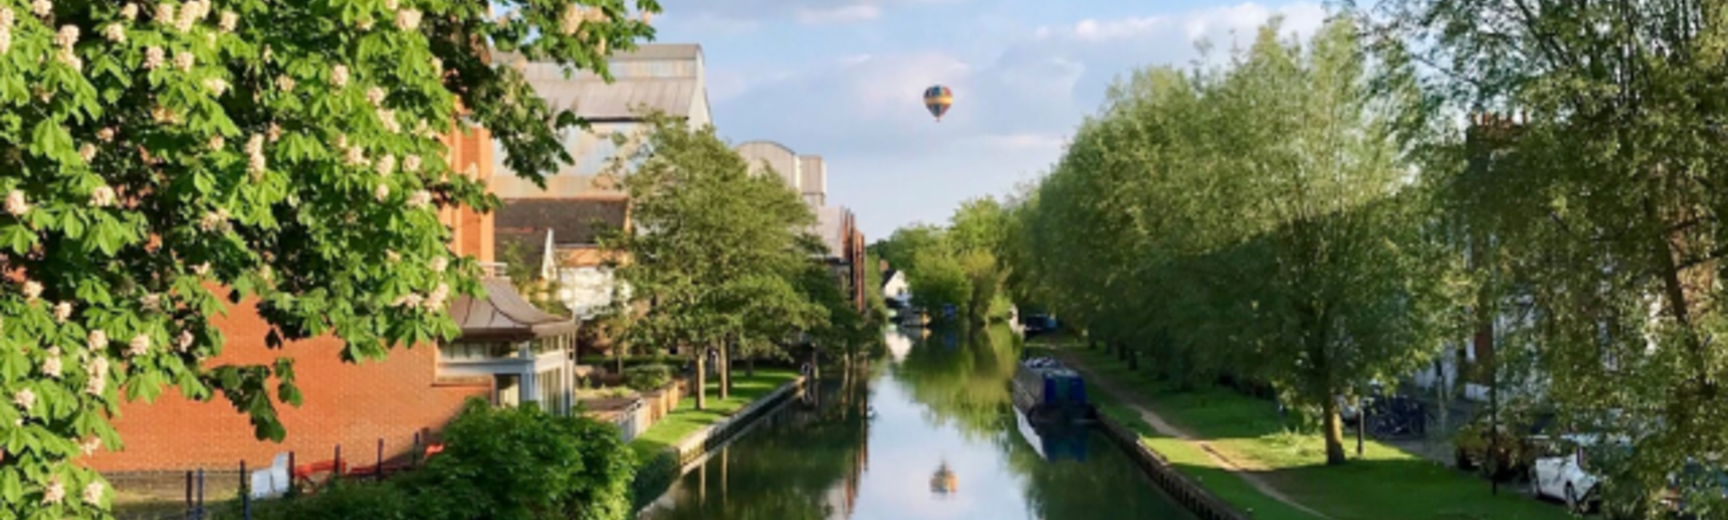 Photo of the Oxford canal with a hot air ballon in the sky above